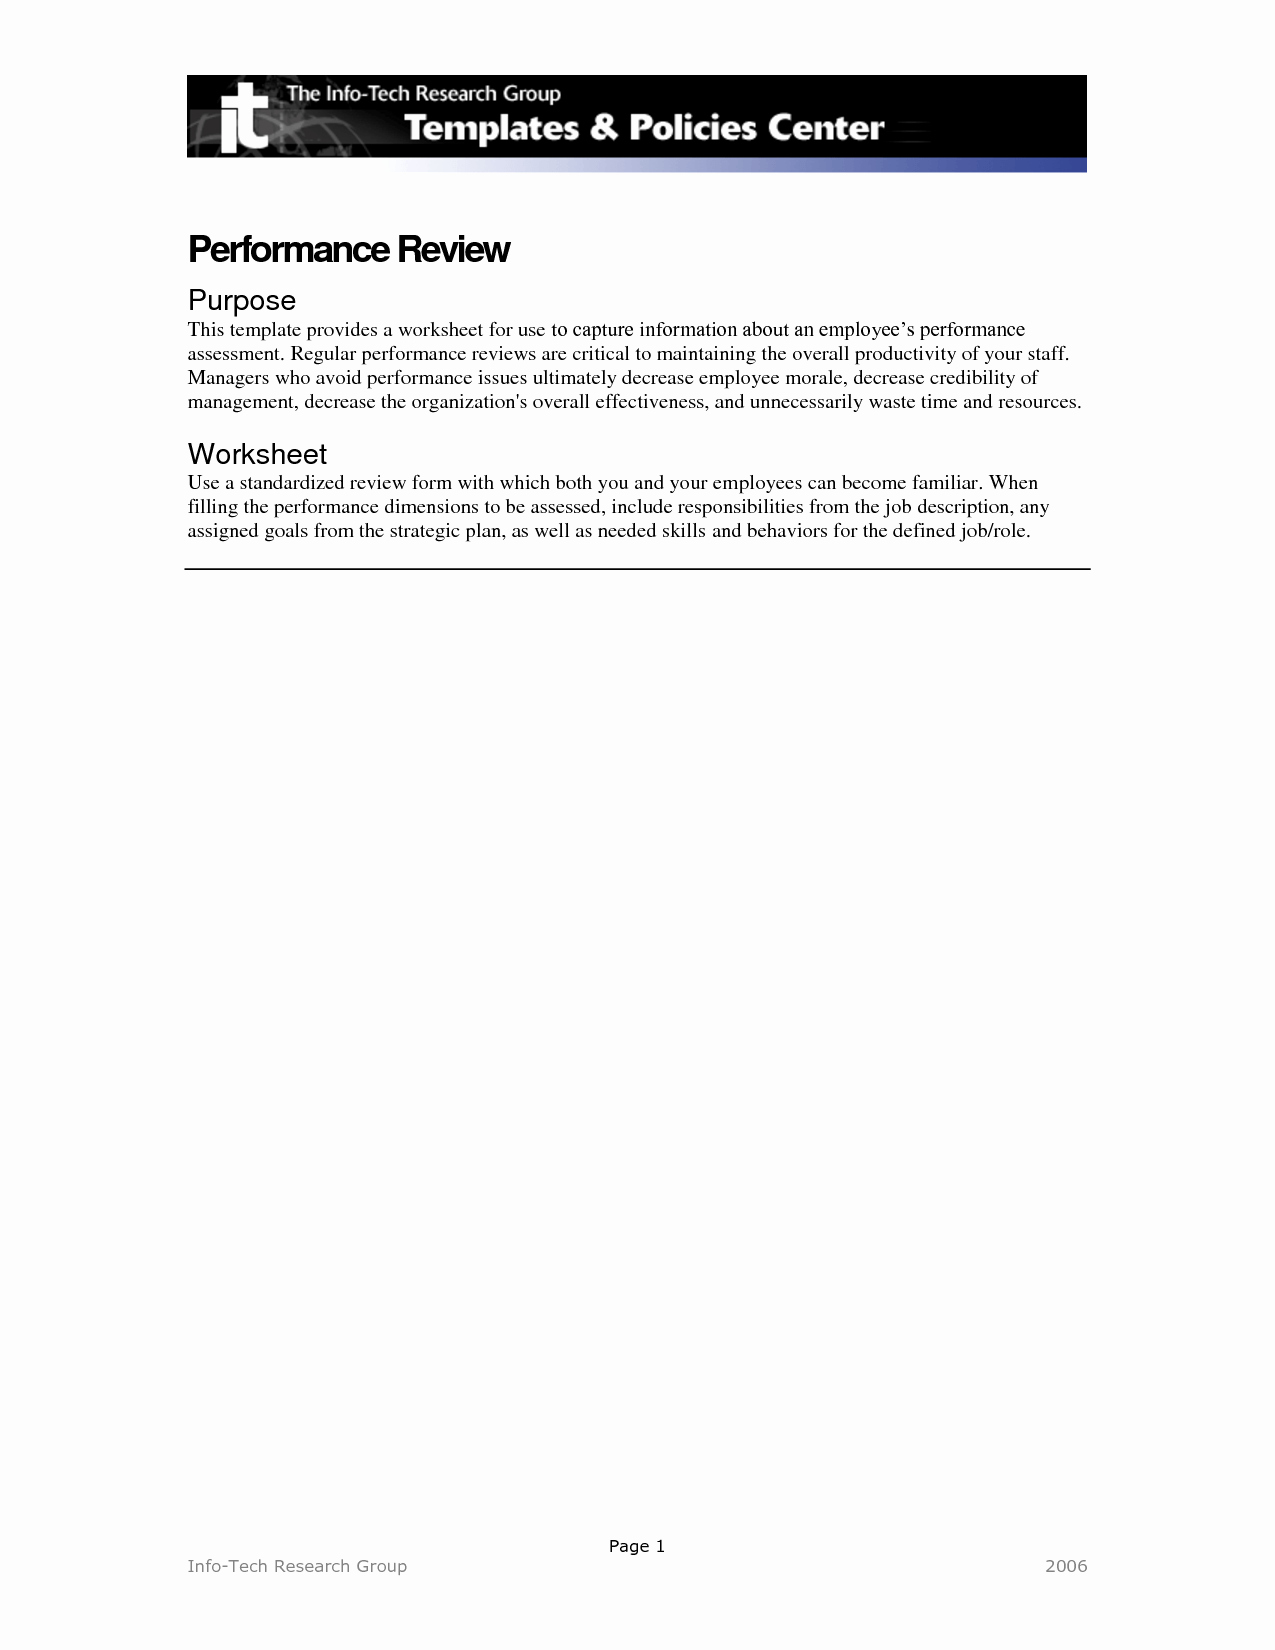 Monthly Performance Review Template Inspirational Monthly Performance Review Template